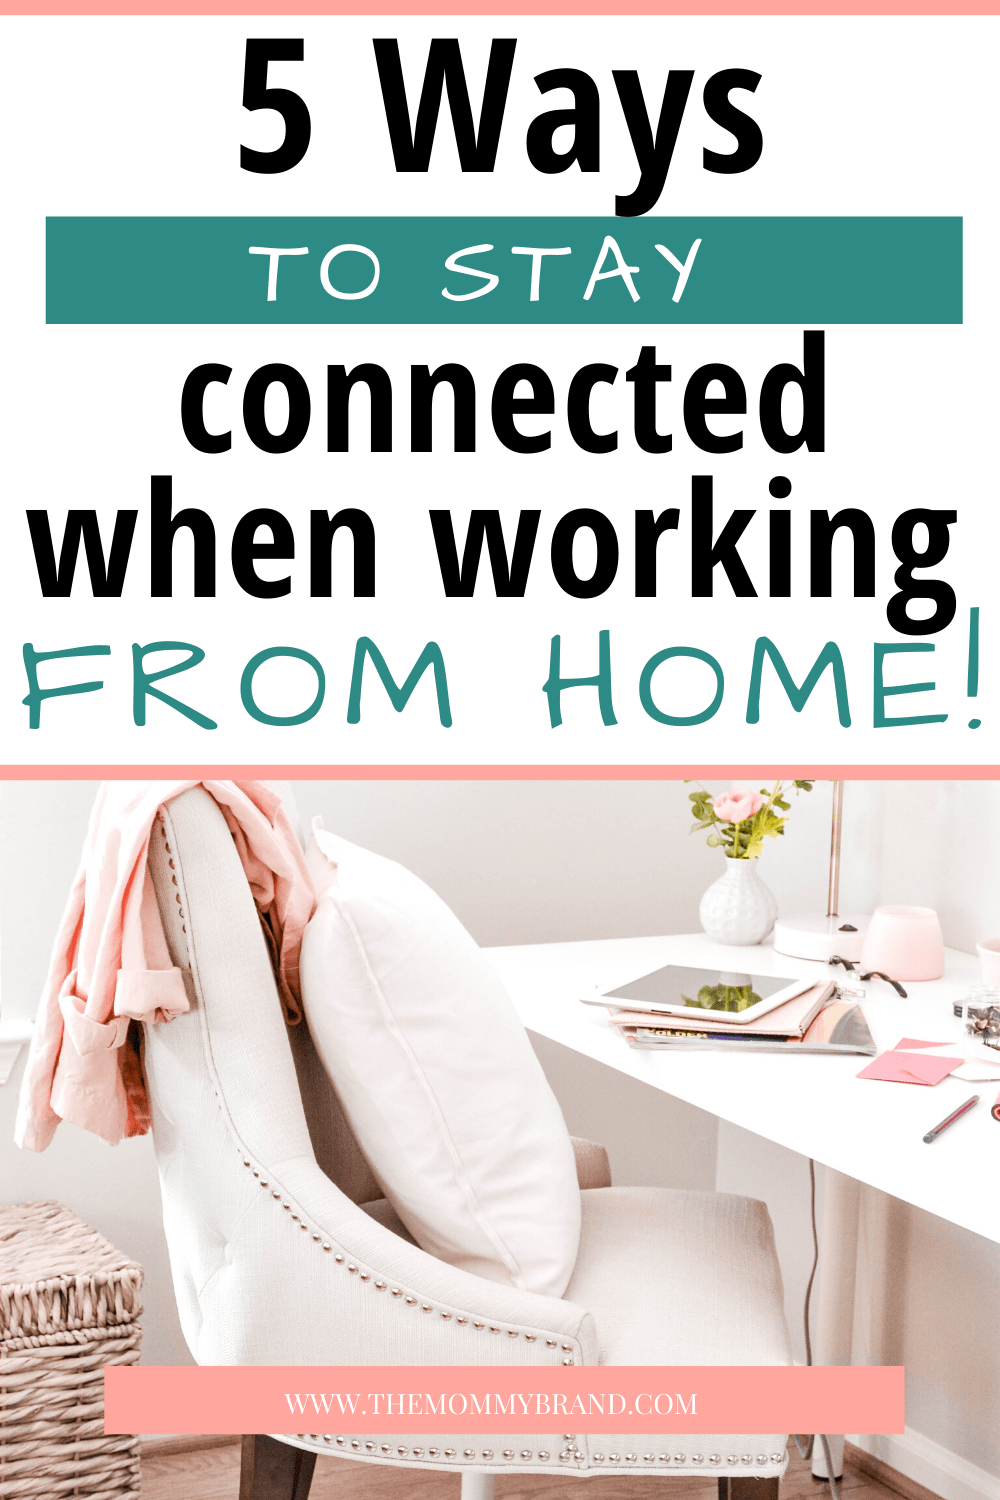 Connection is Important: Stay Connected When Working from Home